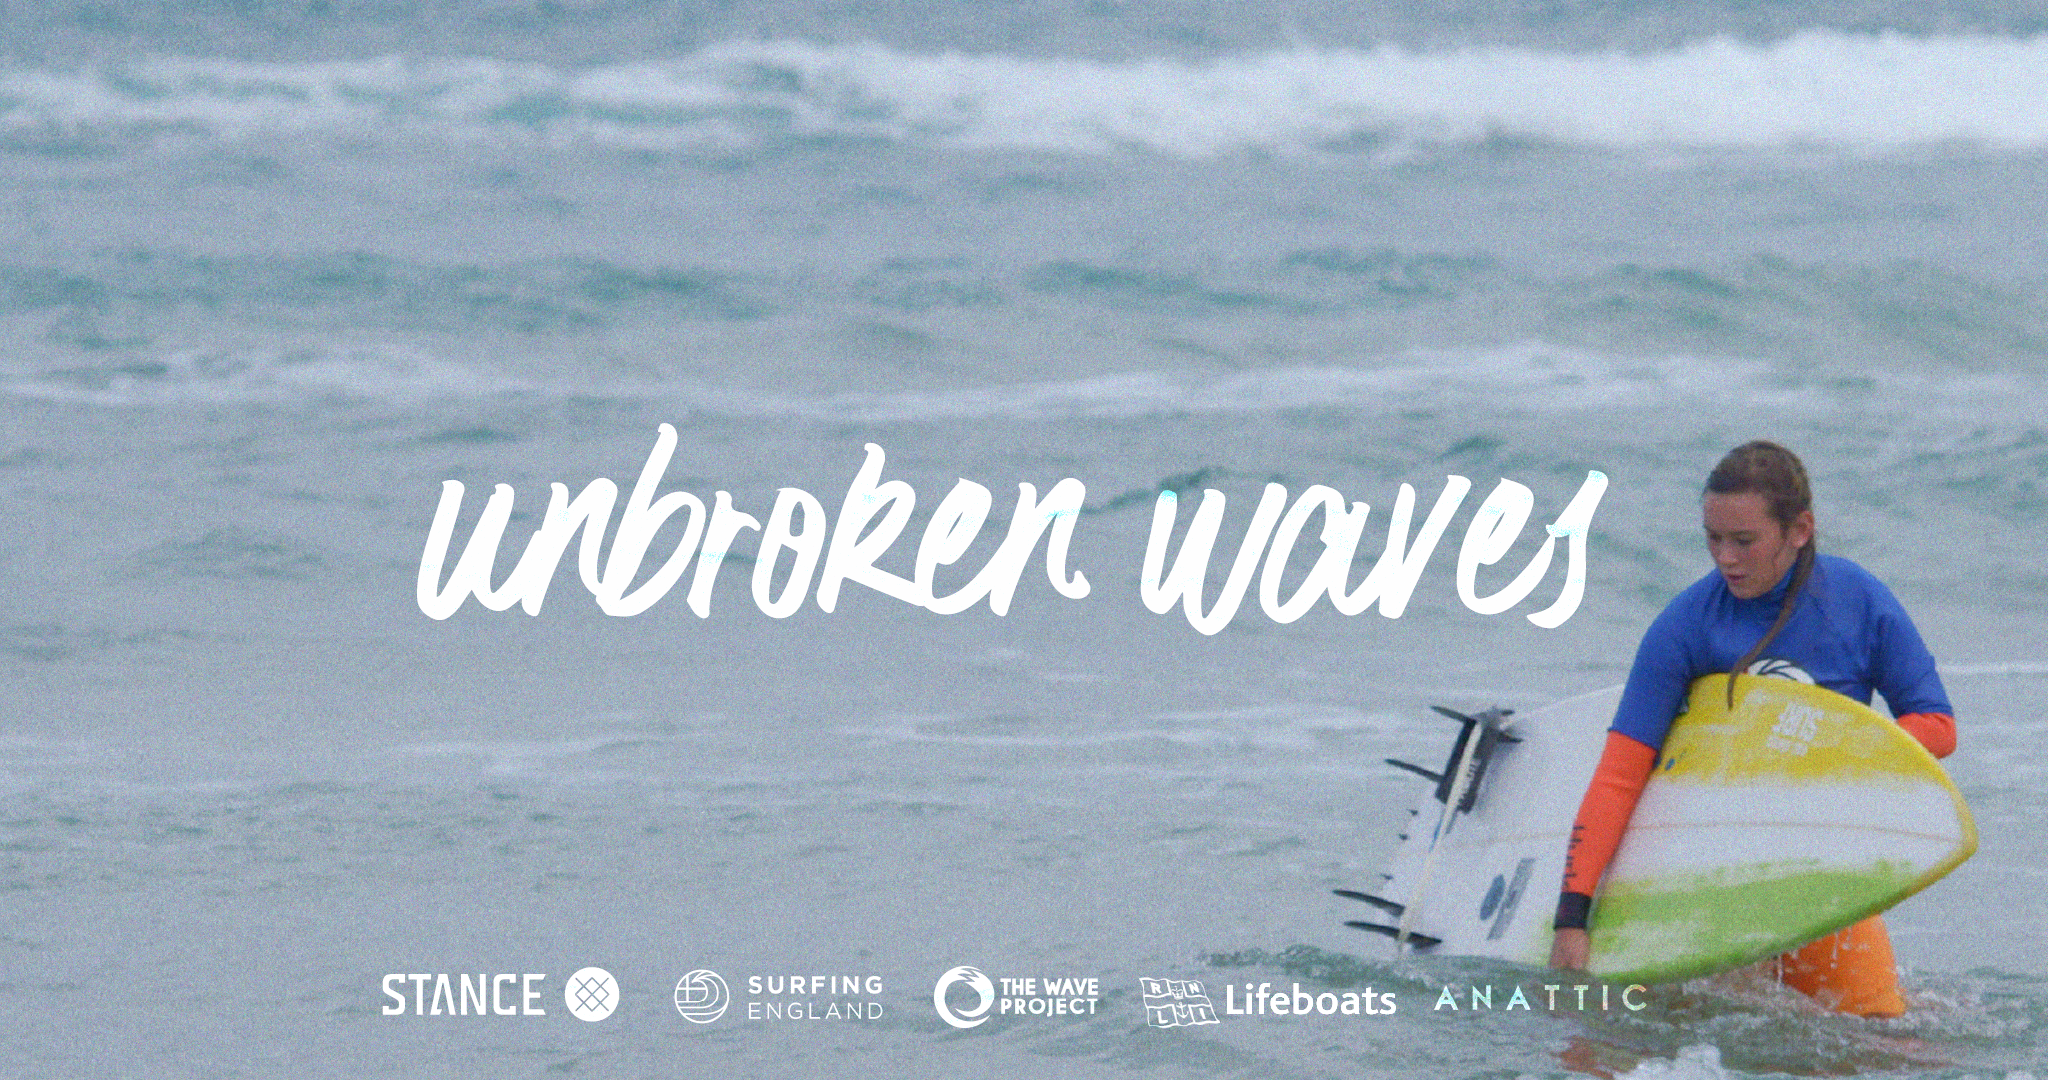 STANCE | unbroken waves